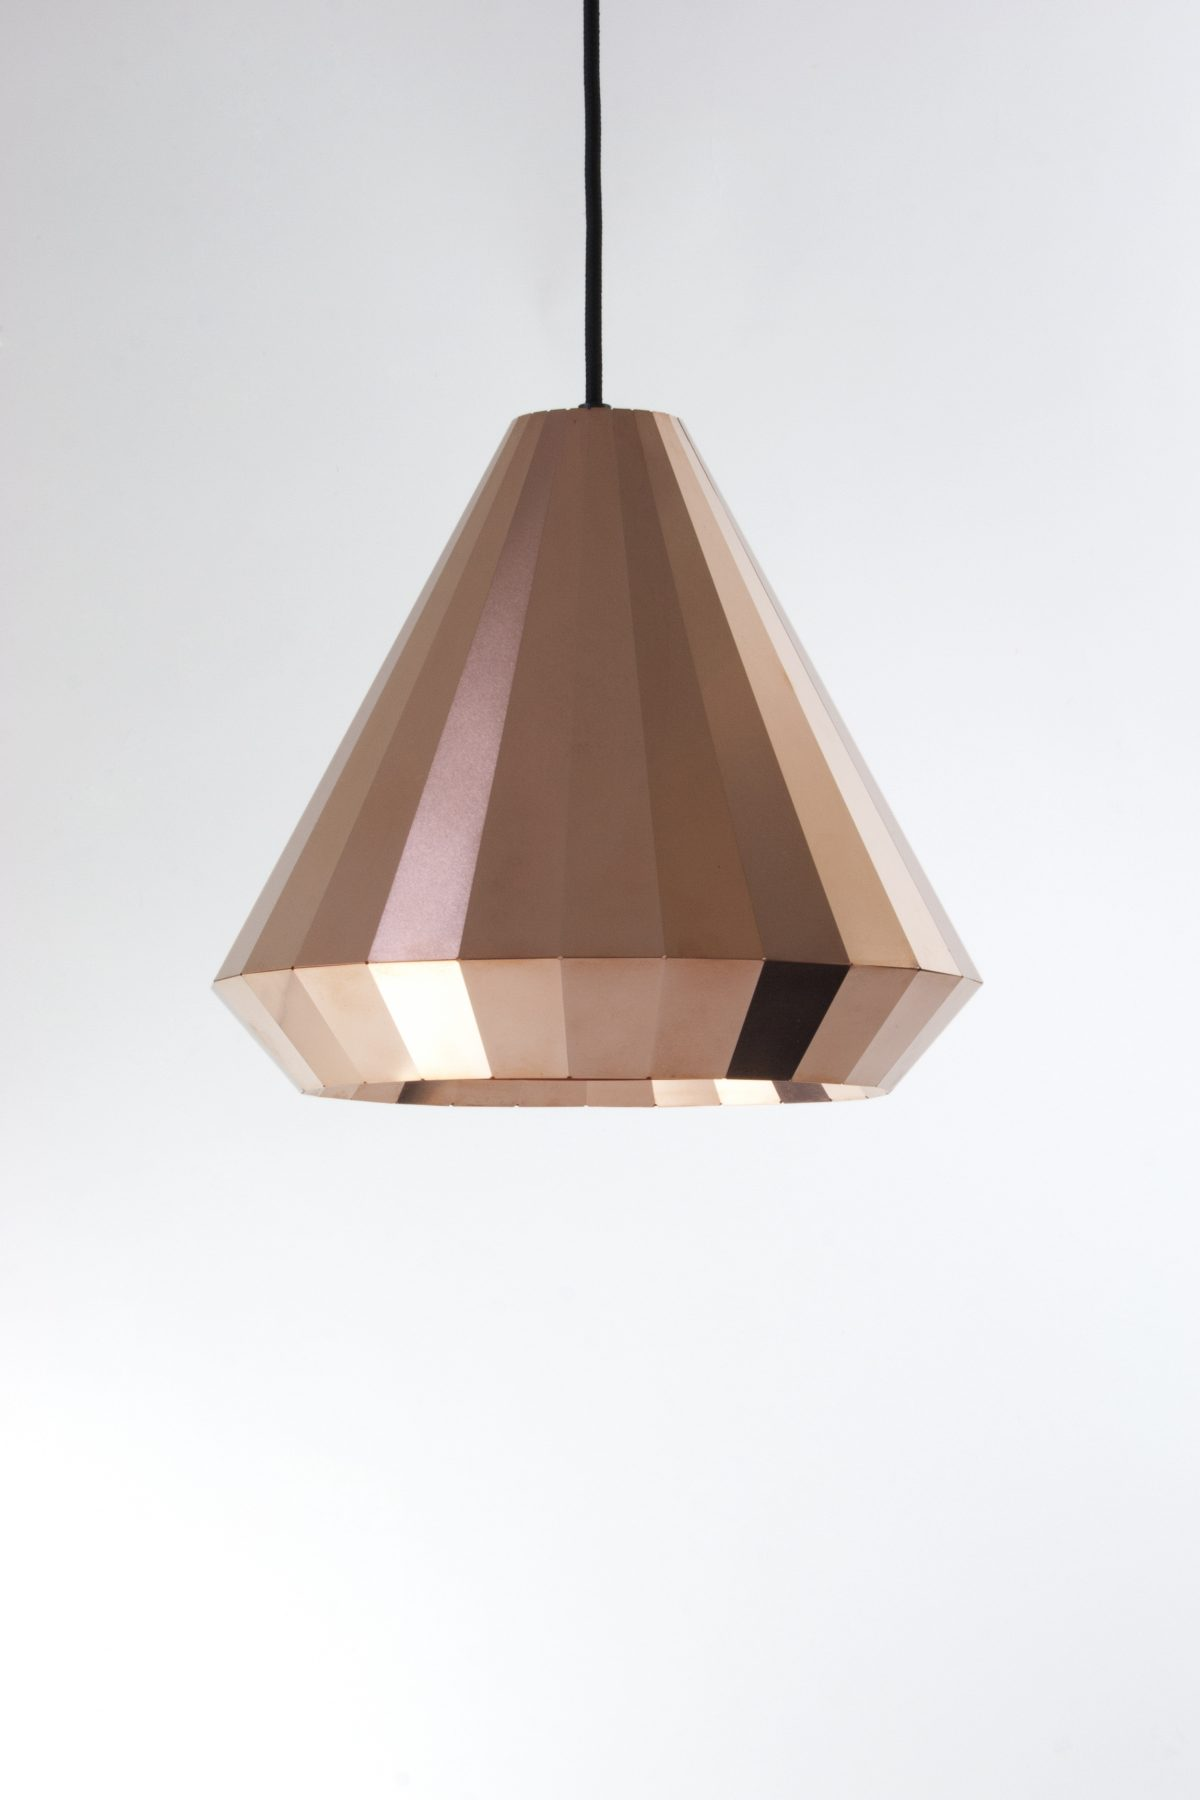 CL-25 Copper Light hanglamp David Derksen Design